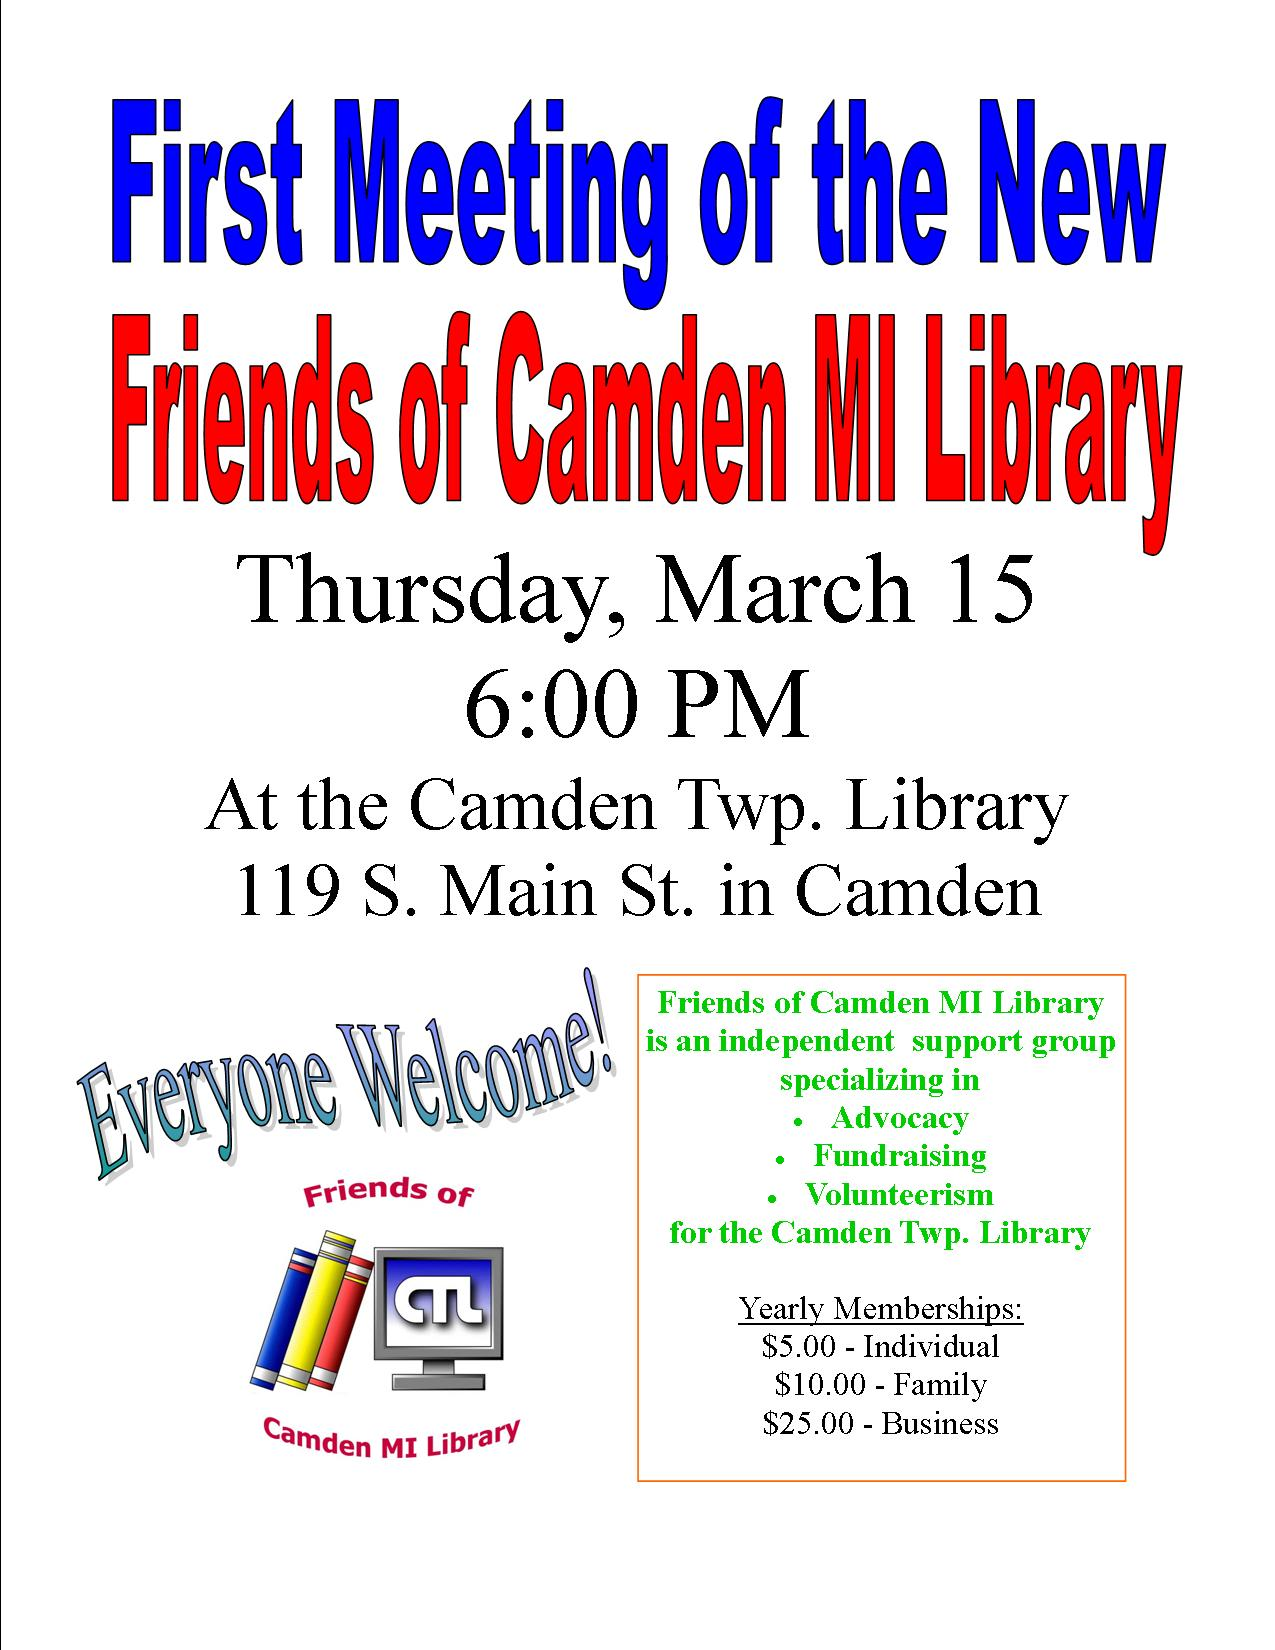 First Friends Meeting flyer.jpg